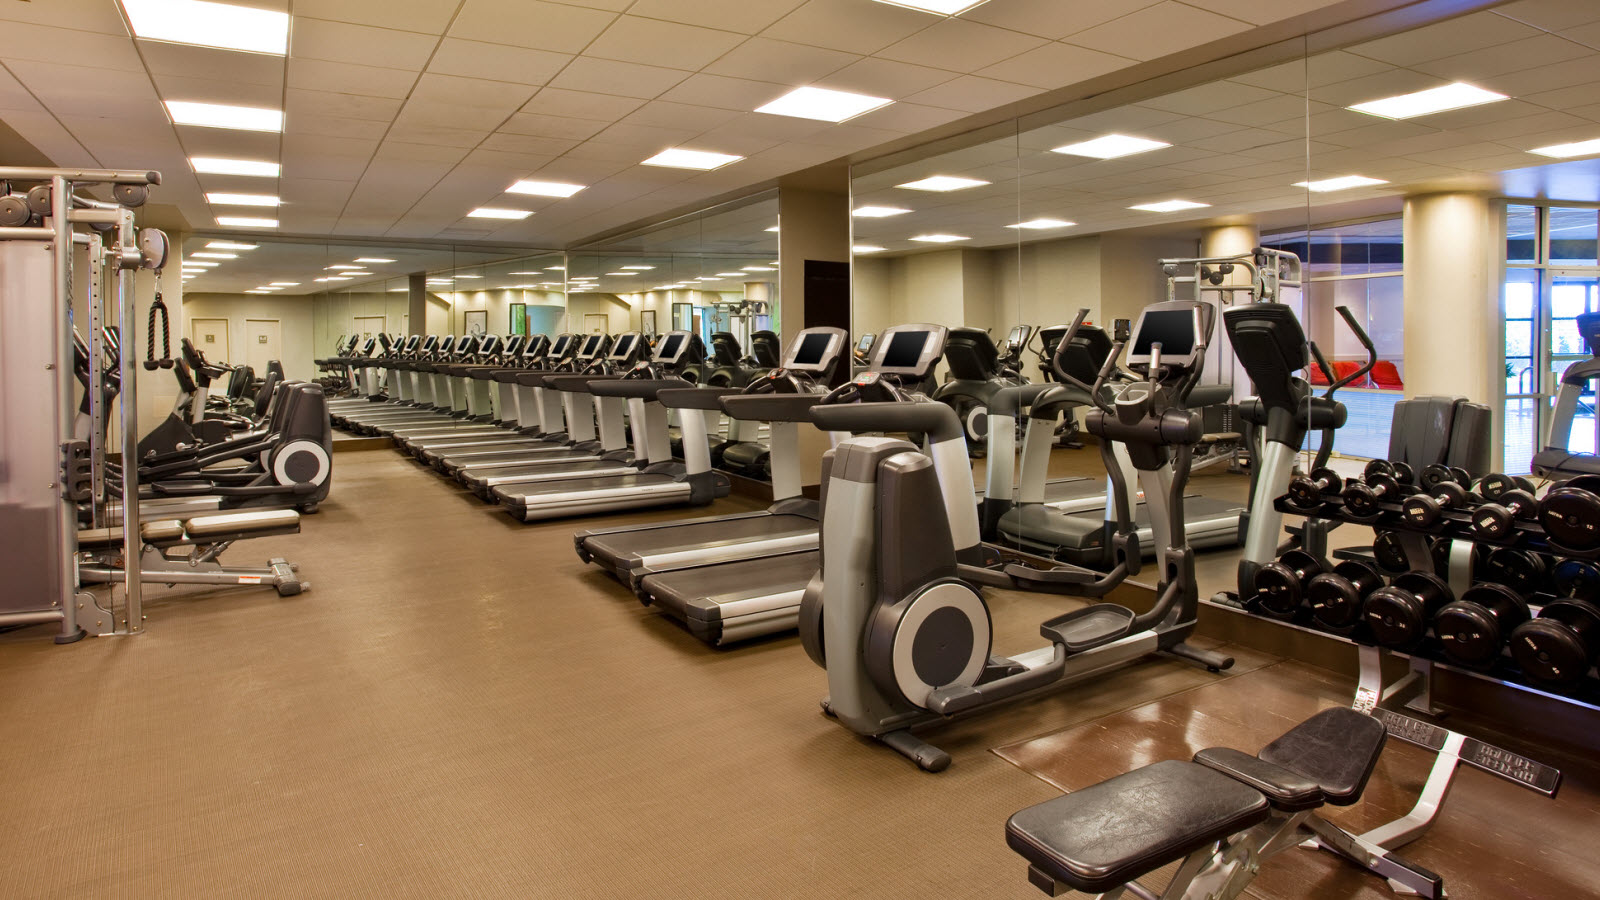 Hotel Features - WestinWORKOUT® Fitness Studio